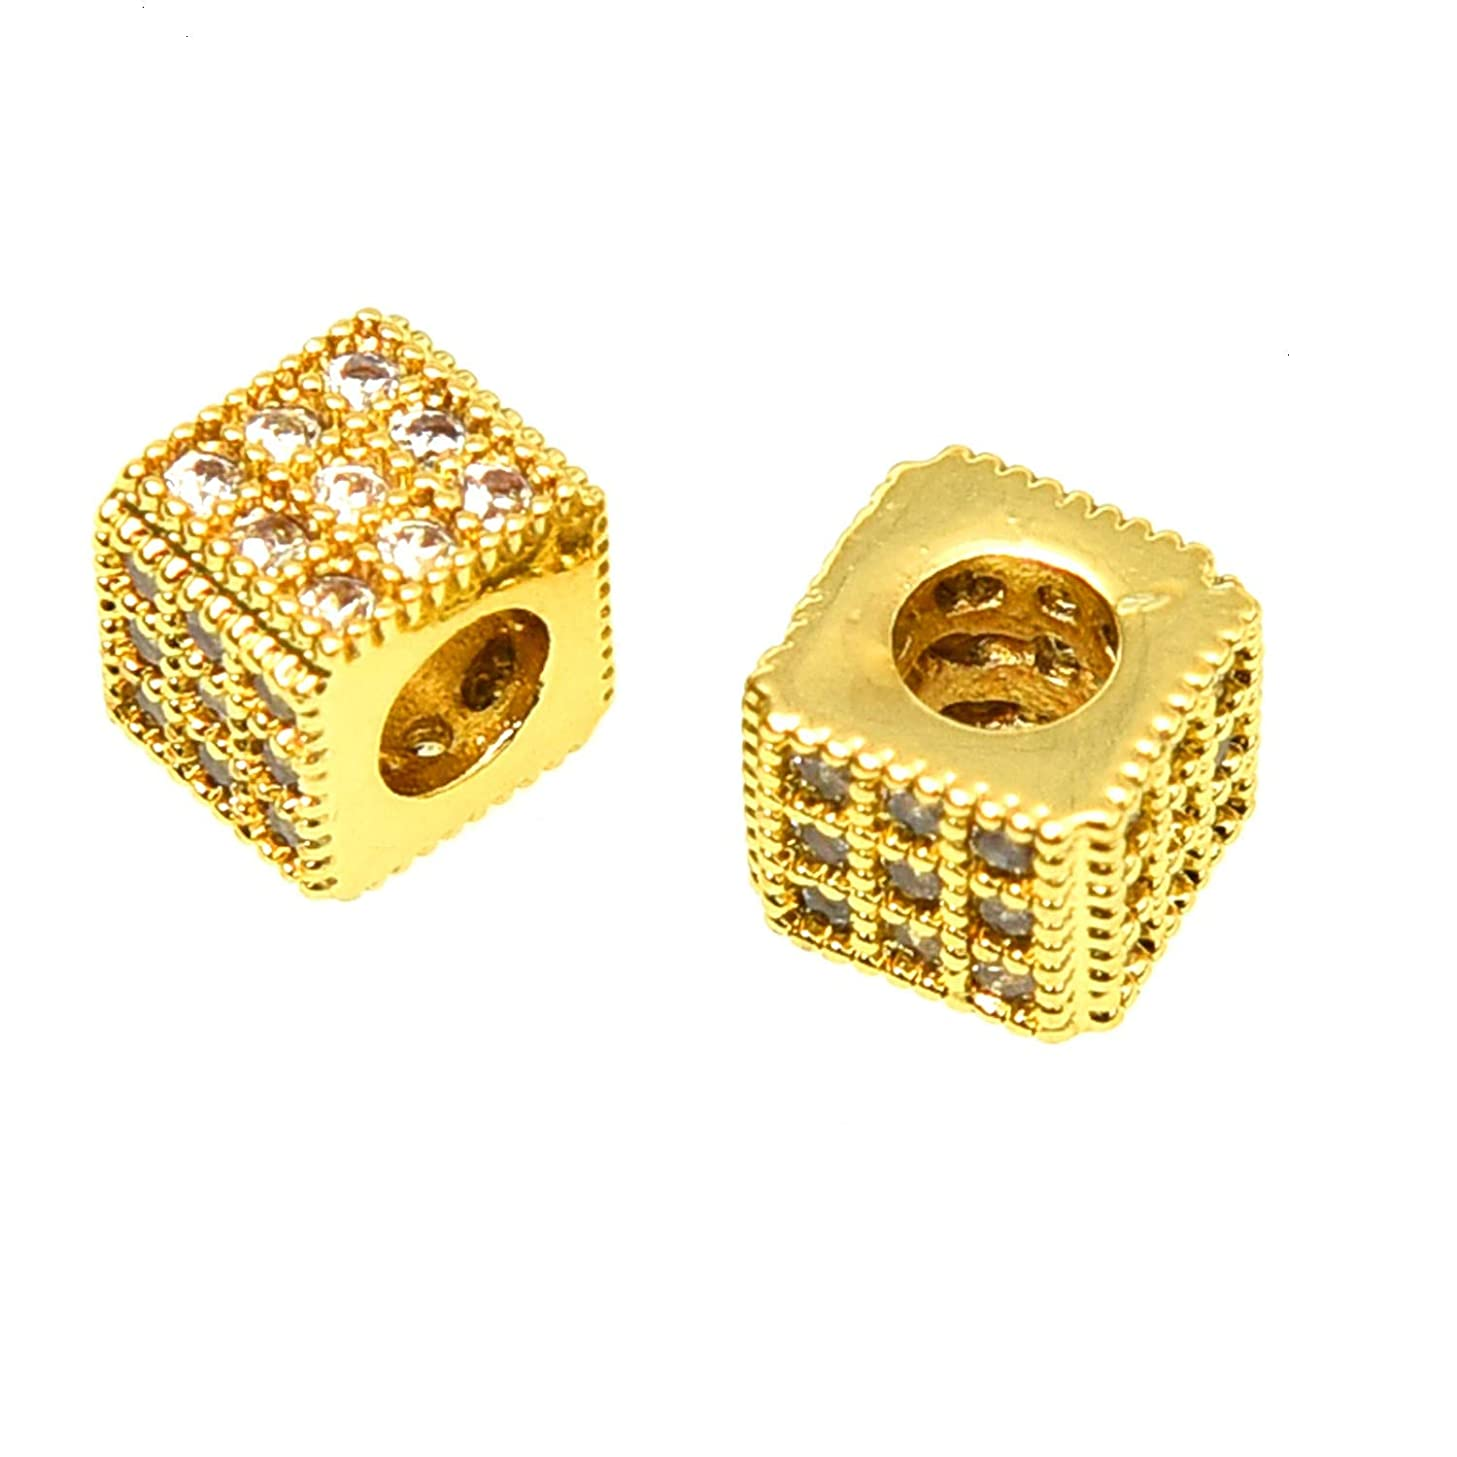 Monrocco 2 Pcs 7mm Gold Zircon Gemstones Brass Micro Pave Square Charm Bead for Jewelry Making